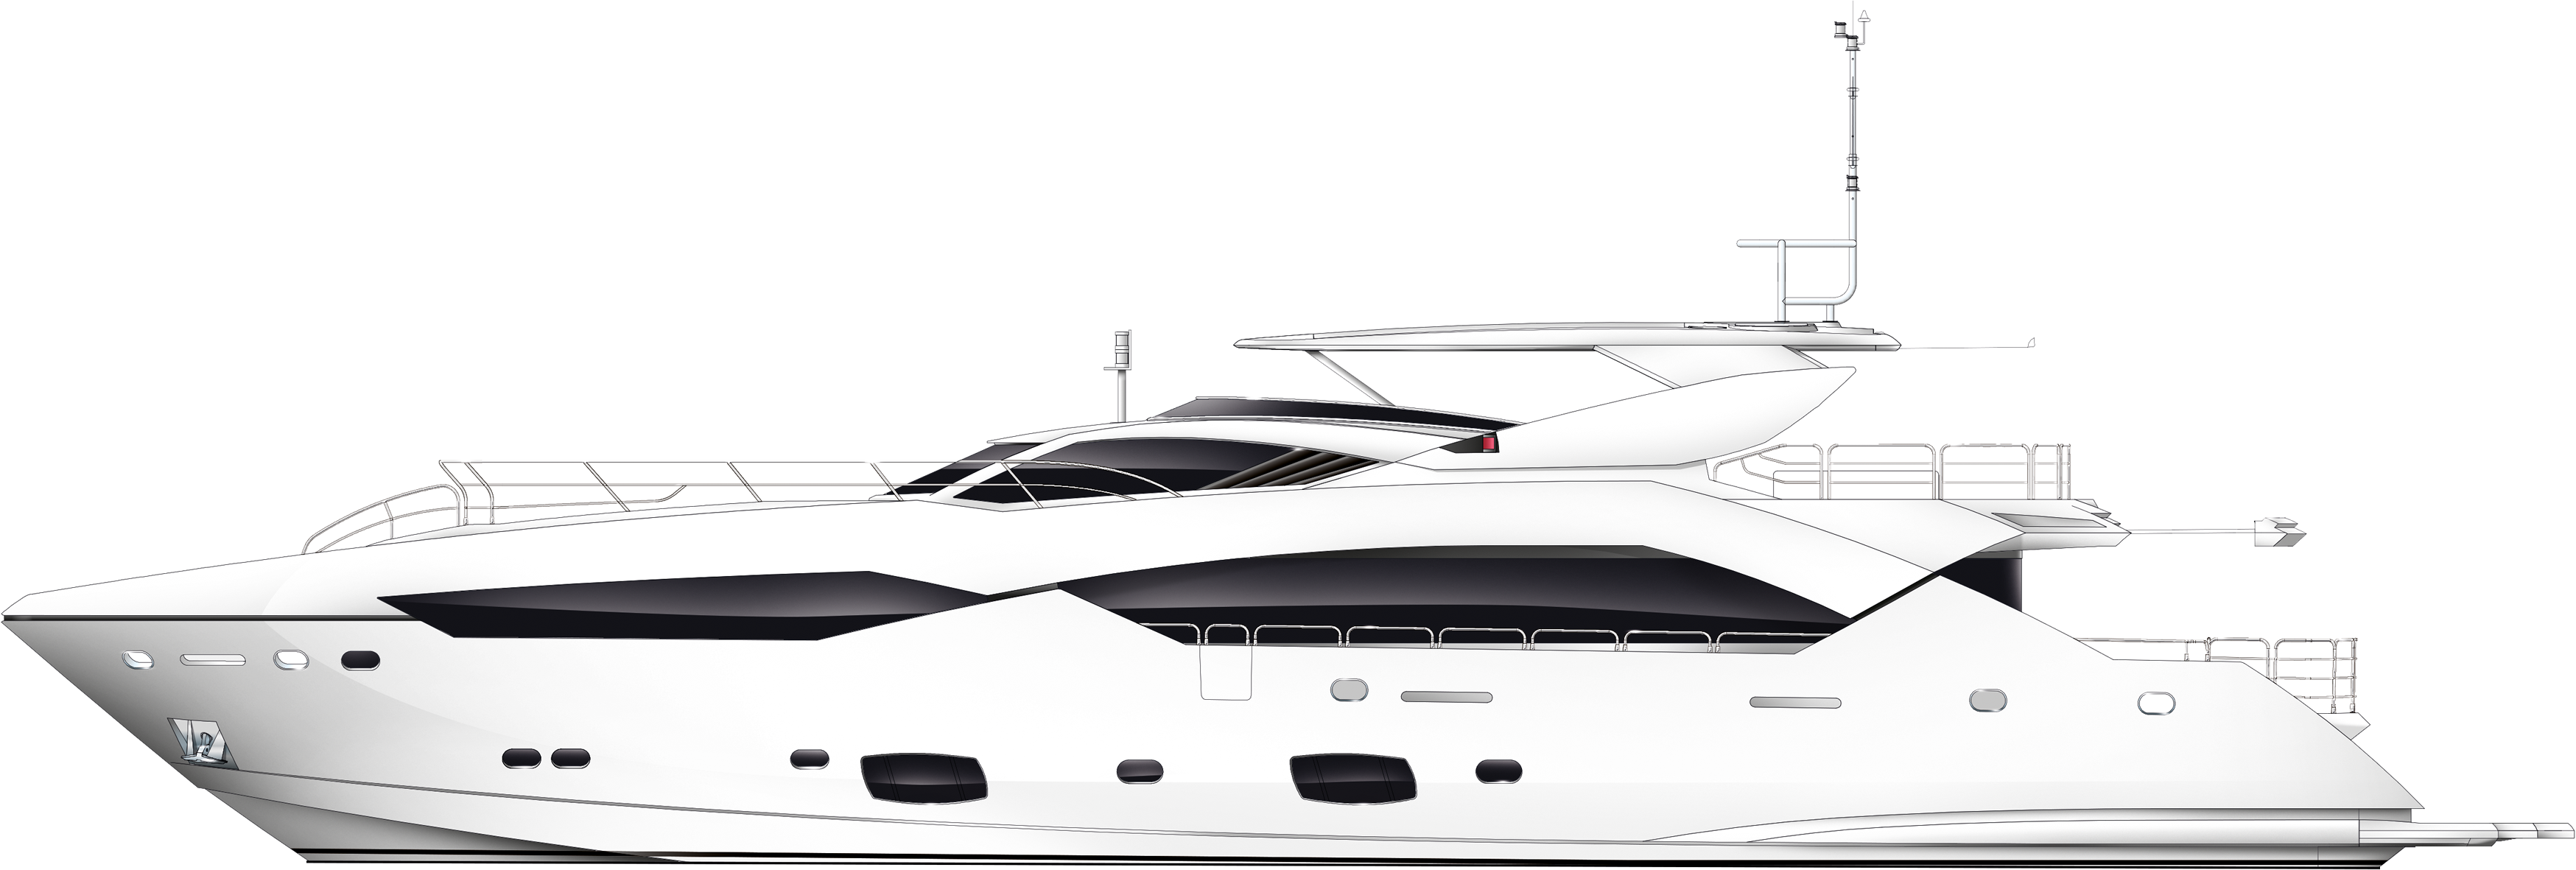 Yacht PNG Image